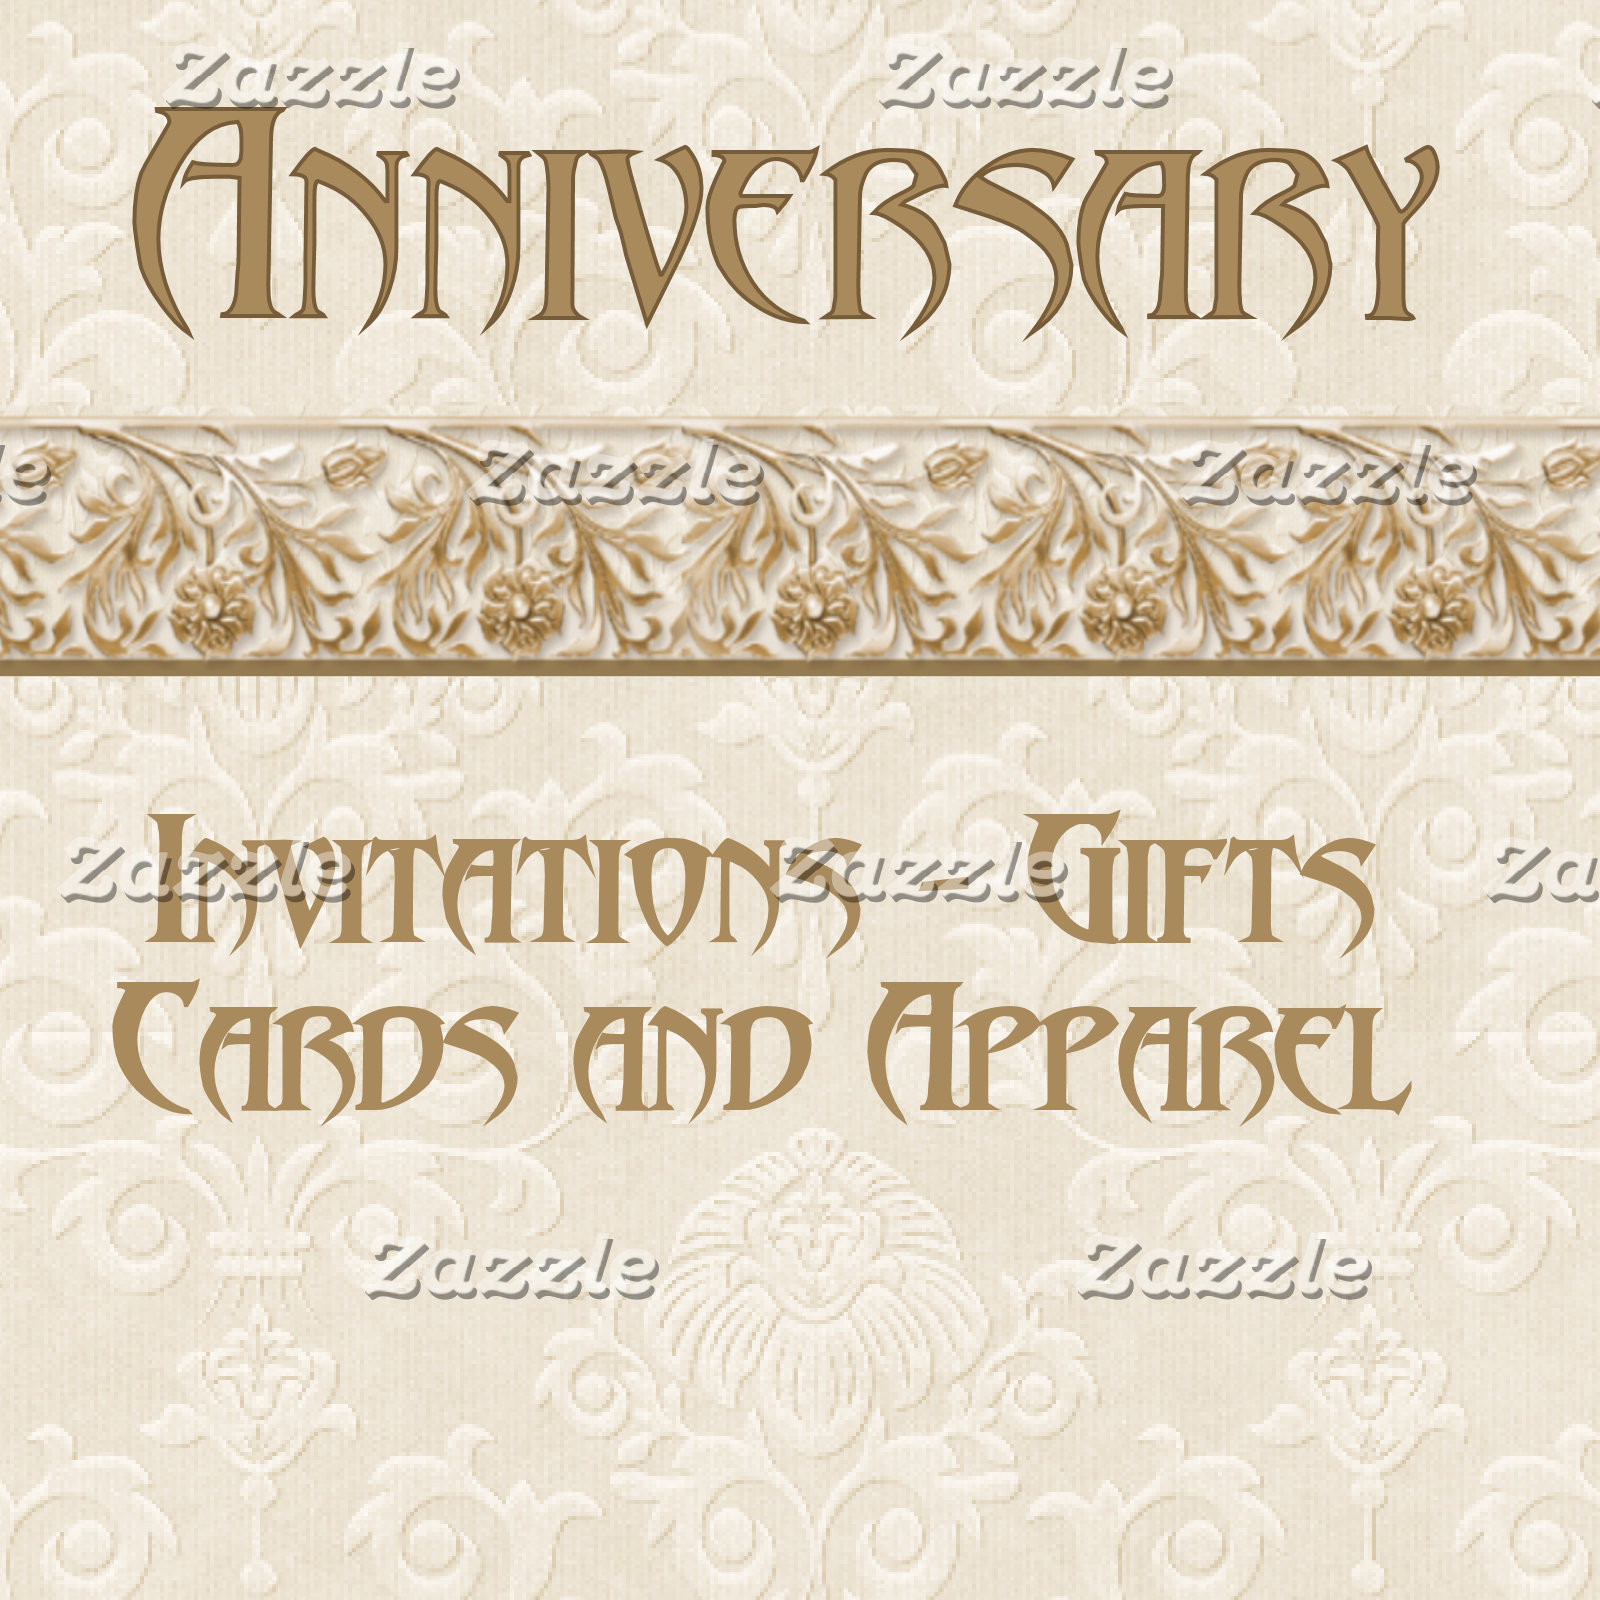 2. ANNIVERSARY -Cards- Gifts - Apparel